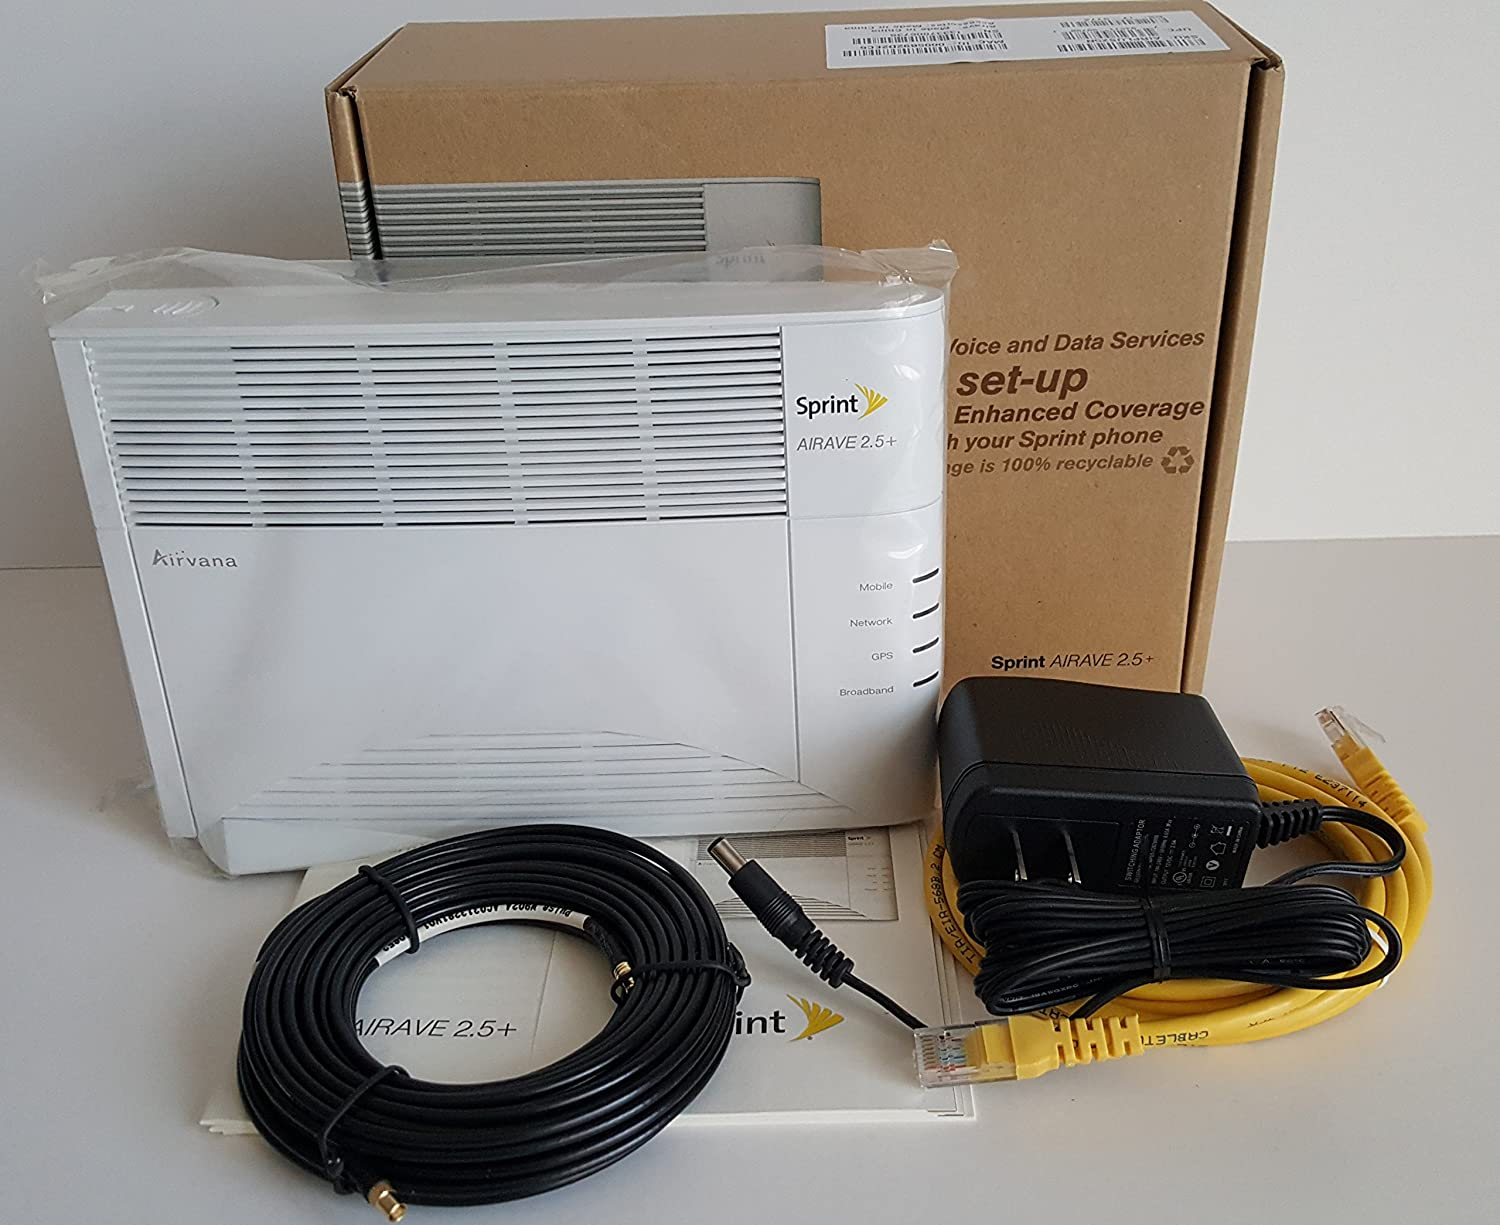 Sprint airave hook up